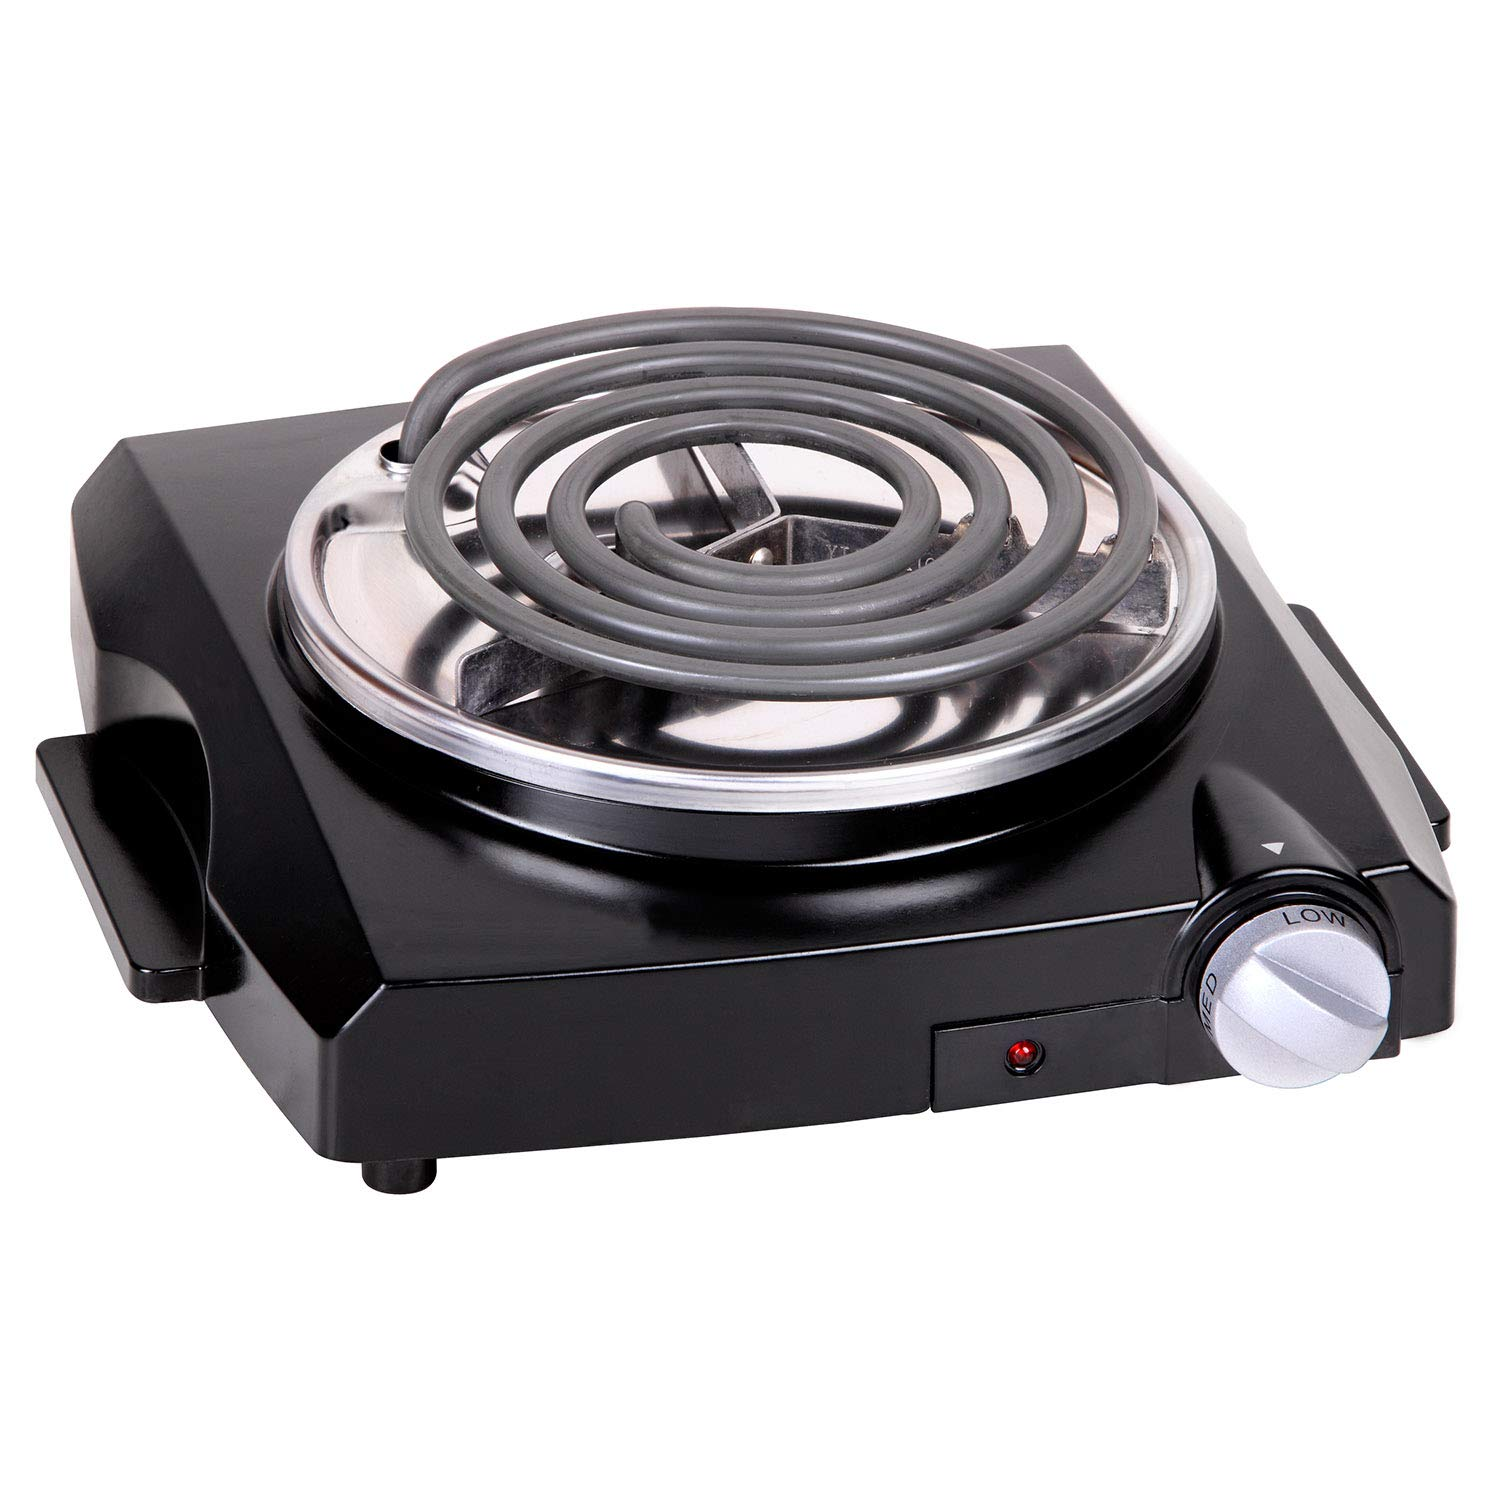 Techwood Hot Plate Electric Burner Countertop Burner Electric Cooktop Single Hot Plate 1100W Single Hot Plate Adjustable Temperature Ceramic Glass Stainless Steel Non-Slip Feet Sliver Easy To Clean Single burner